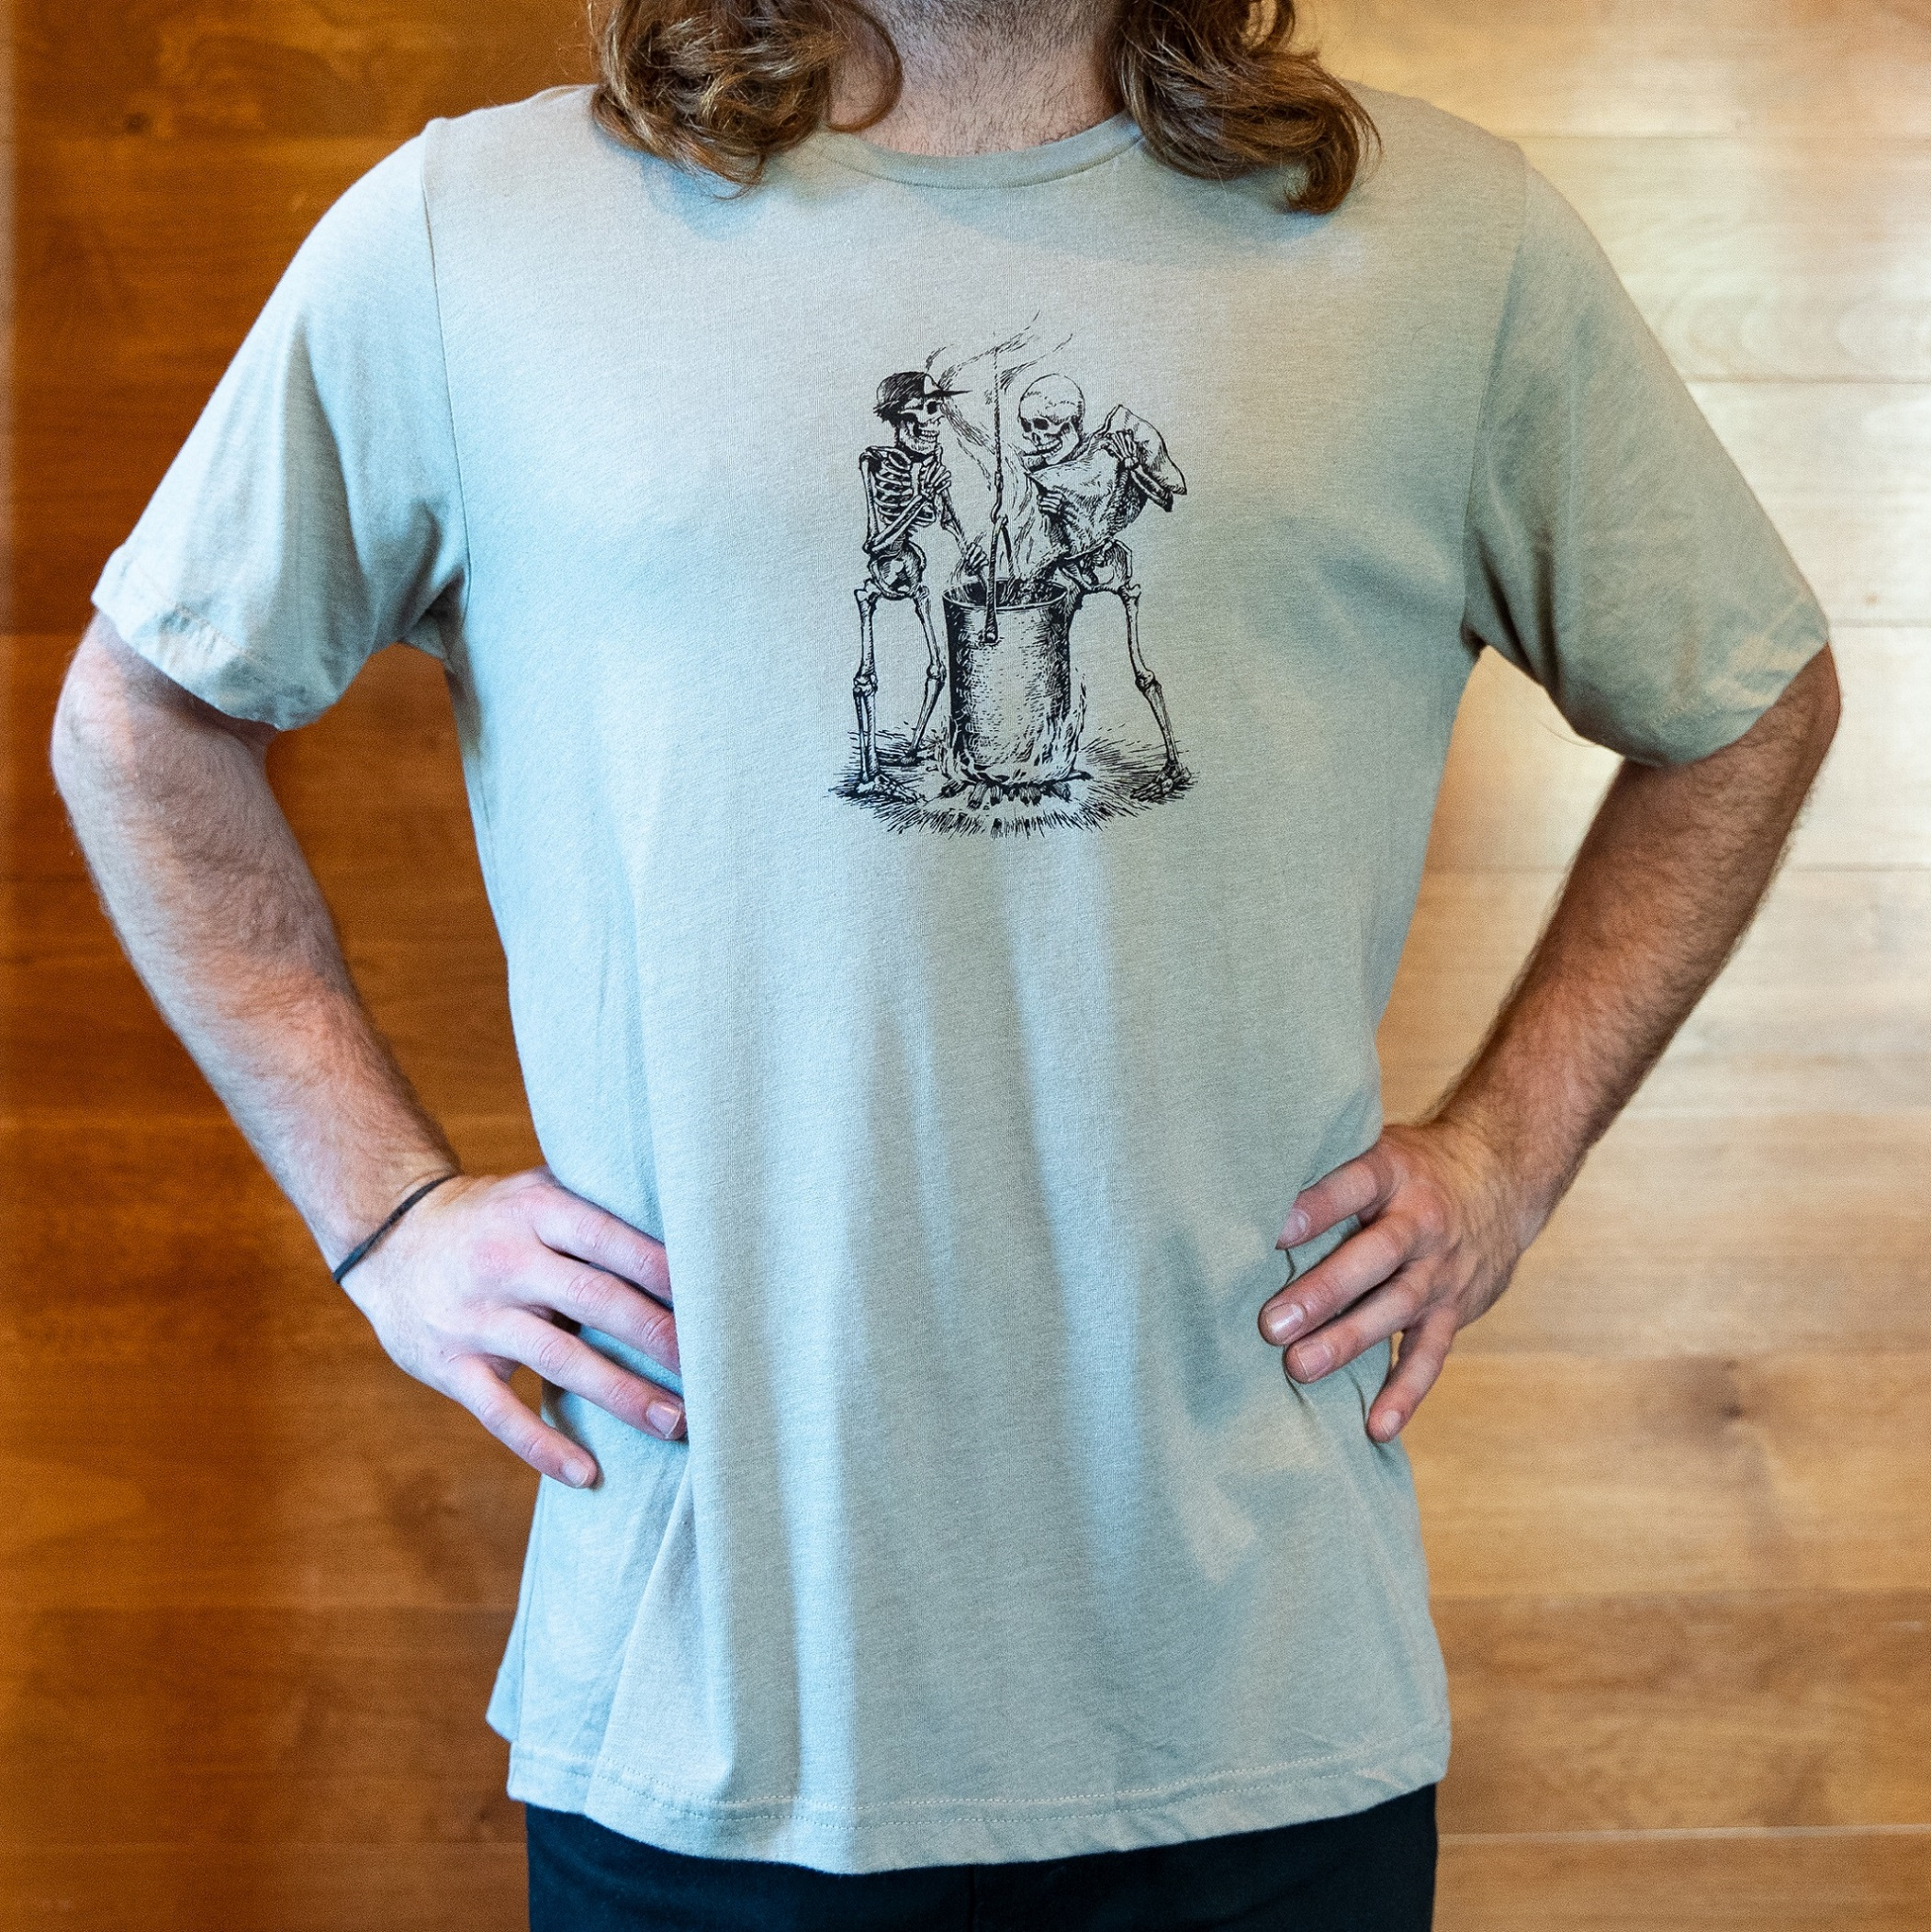 Paul Elder Sketch Tee Brewing Skeletons THUMBNAIL